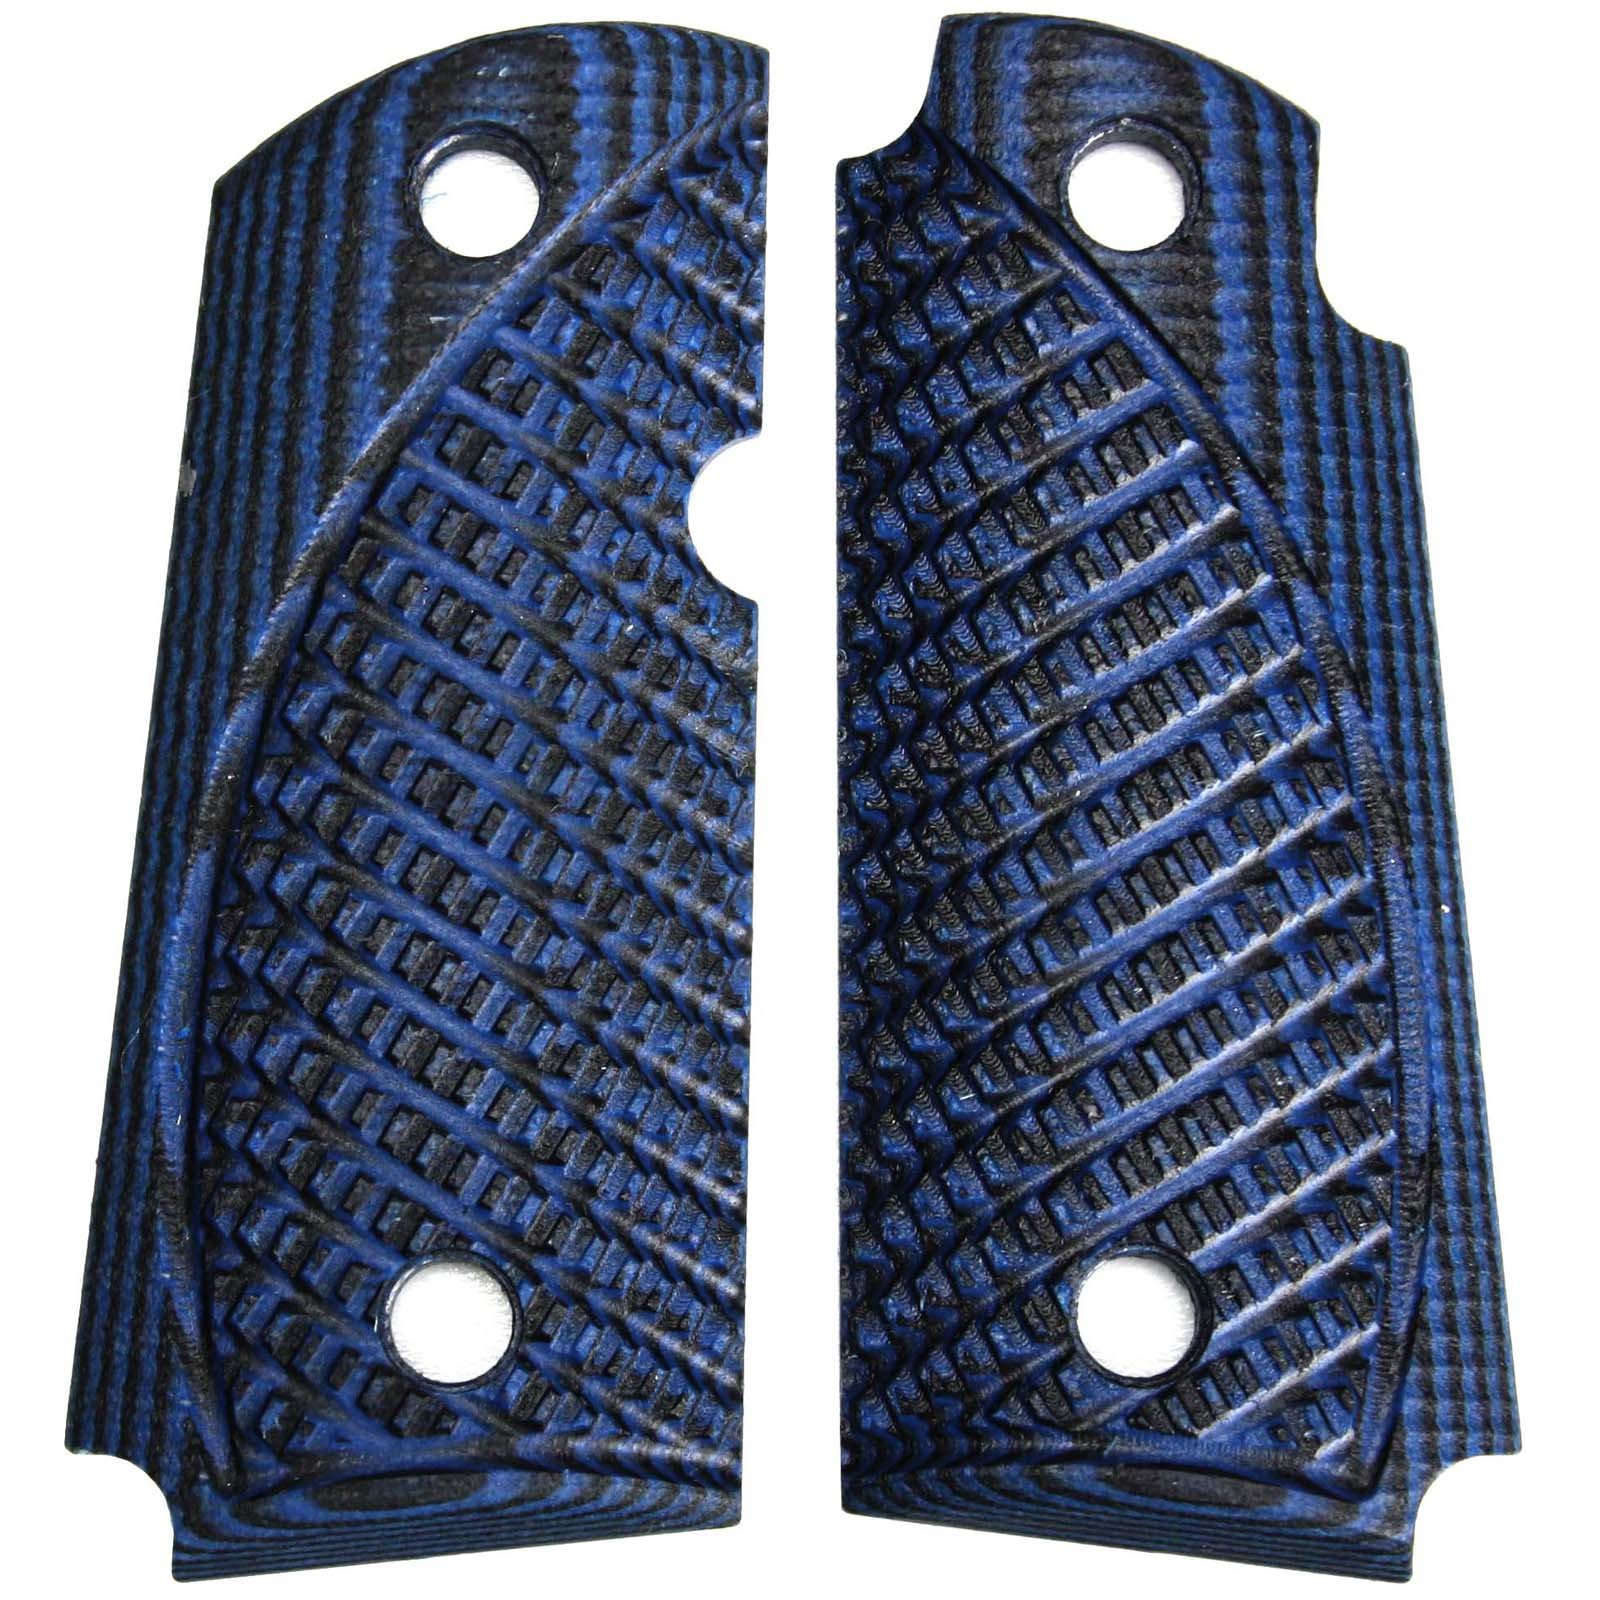 StonerCNC Kimber Micro Carry 9 9mm Spartan G10 Grips with or Without Ambi (Blue Black, Ambi) by StonerCNC